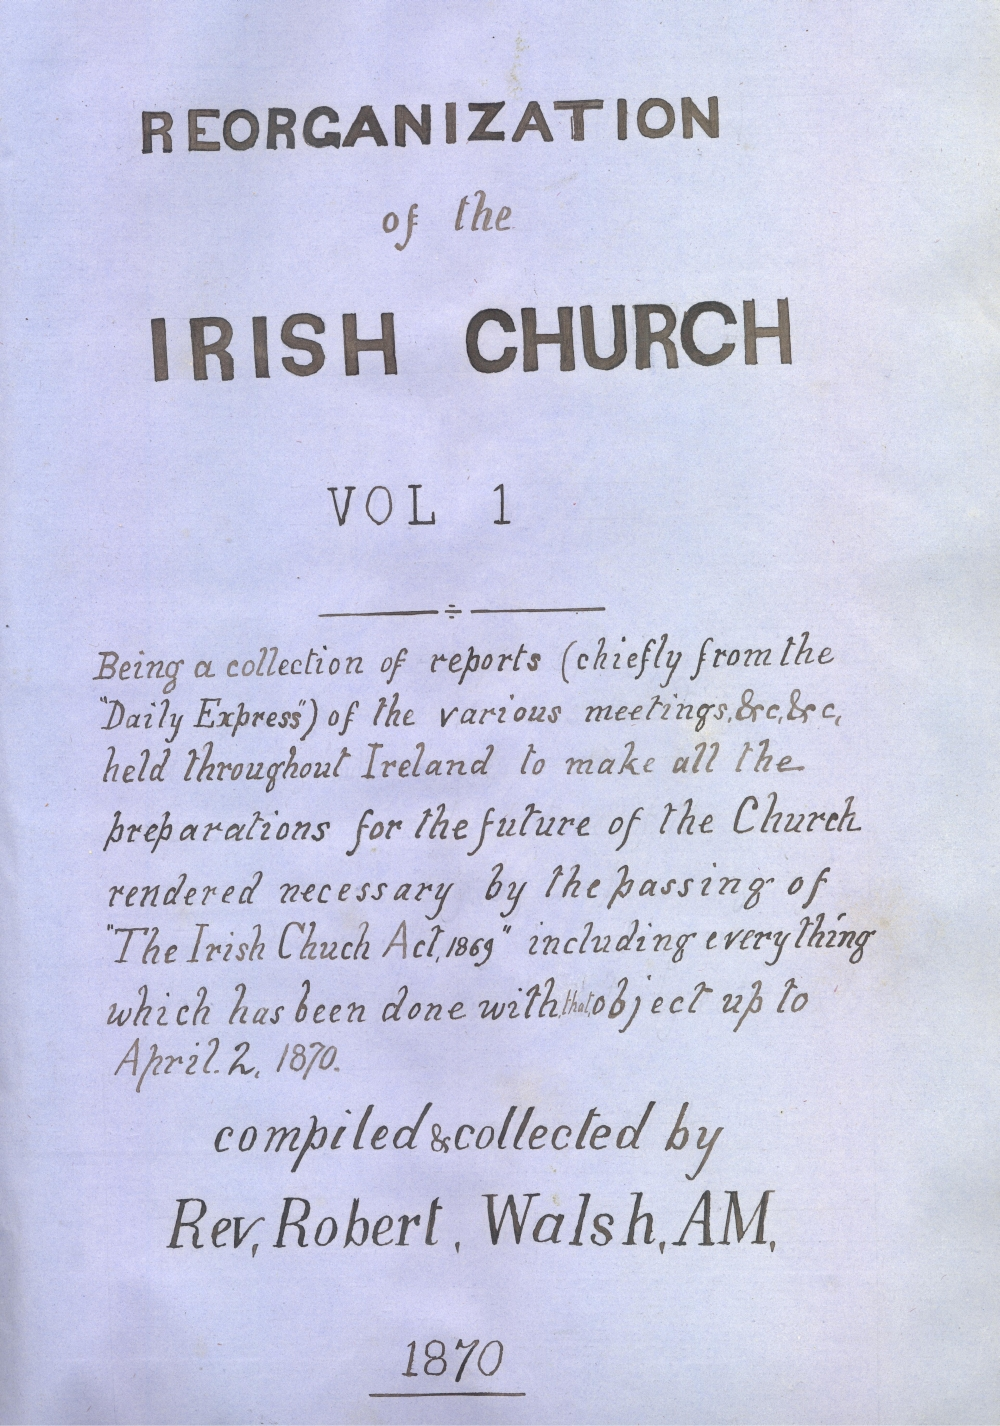 Title pages from the 'Reorganisation of the Irish Church' volumes 1 and 2, being a continuation of Walsh's press cutting work on matters relating to the affairs of the Church of Ireland post-disestablishment, RCB Library MS 297/2 and /3.